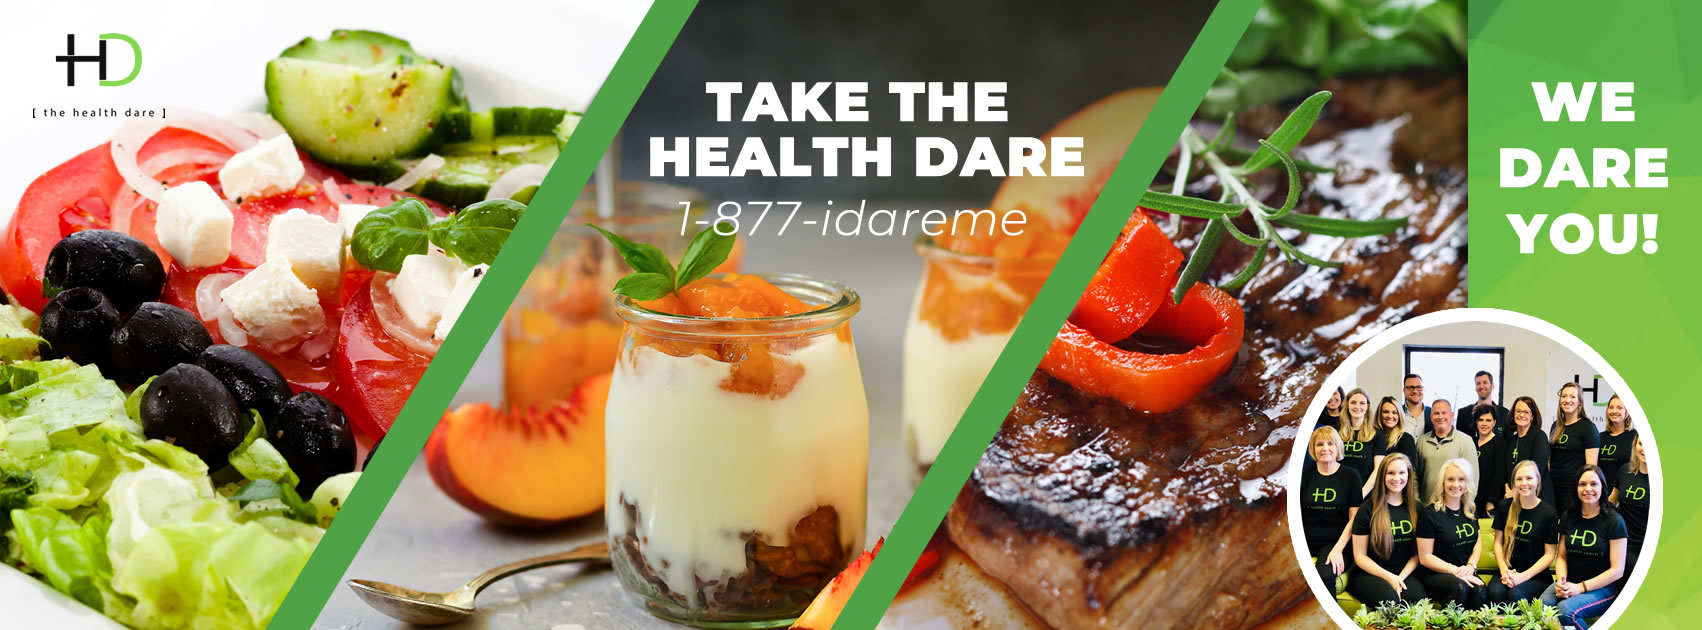 2020-health-dare-weight-loss-greenville-columbia-sc-3